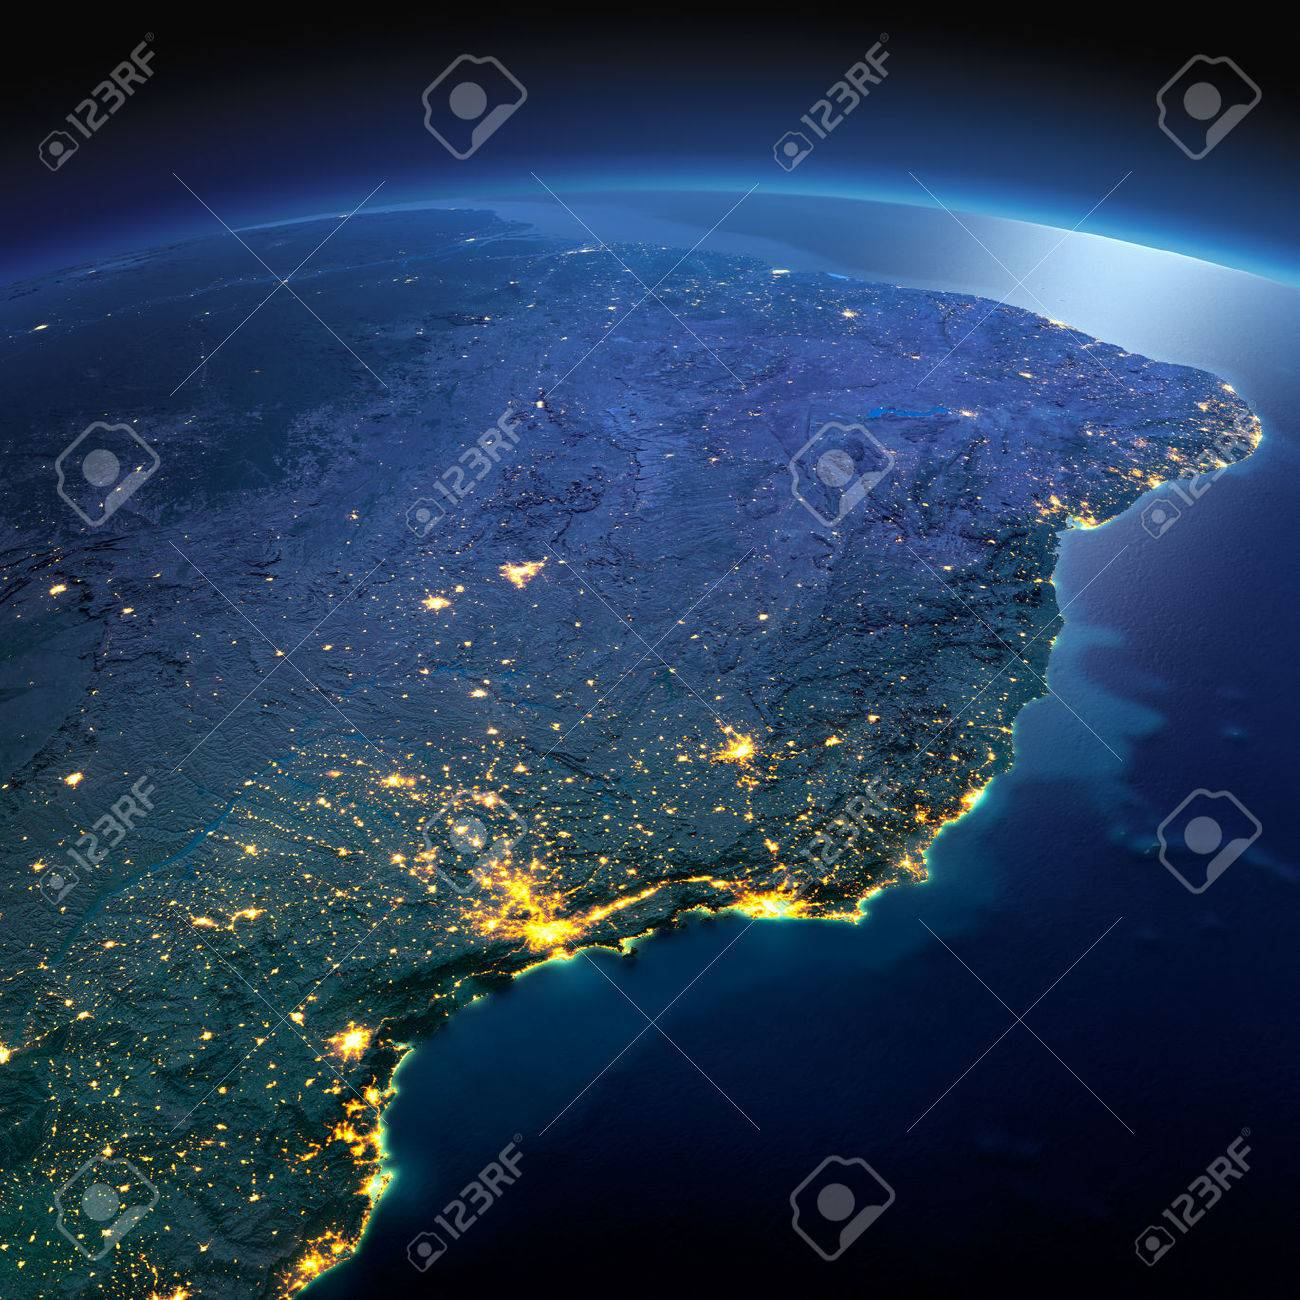 Night planet Earth with precise detailed relief and city lights illuminated by moonlight. South America. East Coast of Brazil. Elements of this image furnished by NASA - 50372696